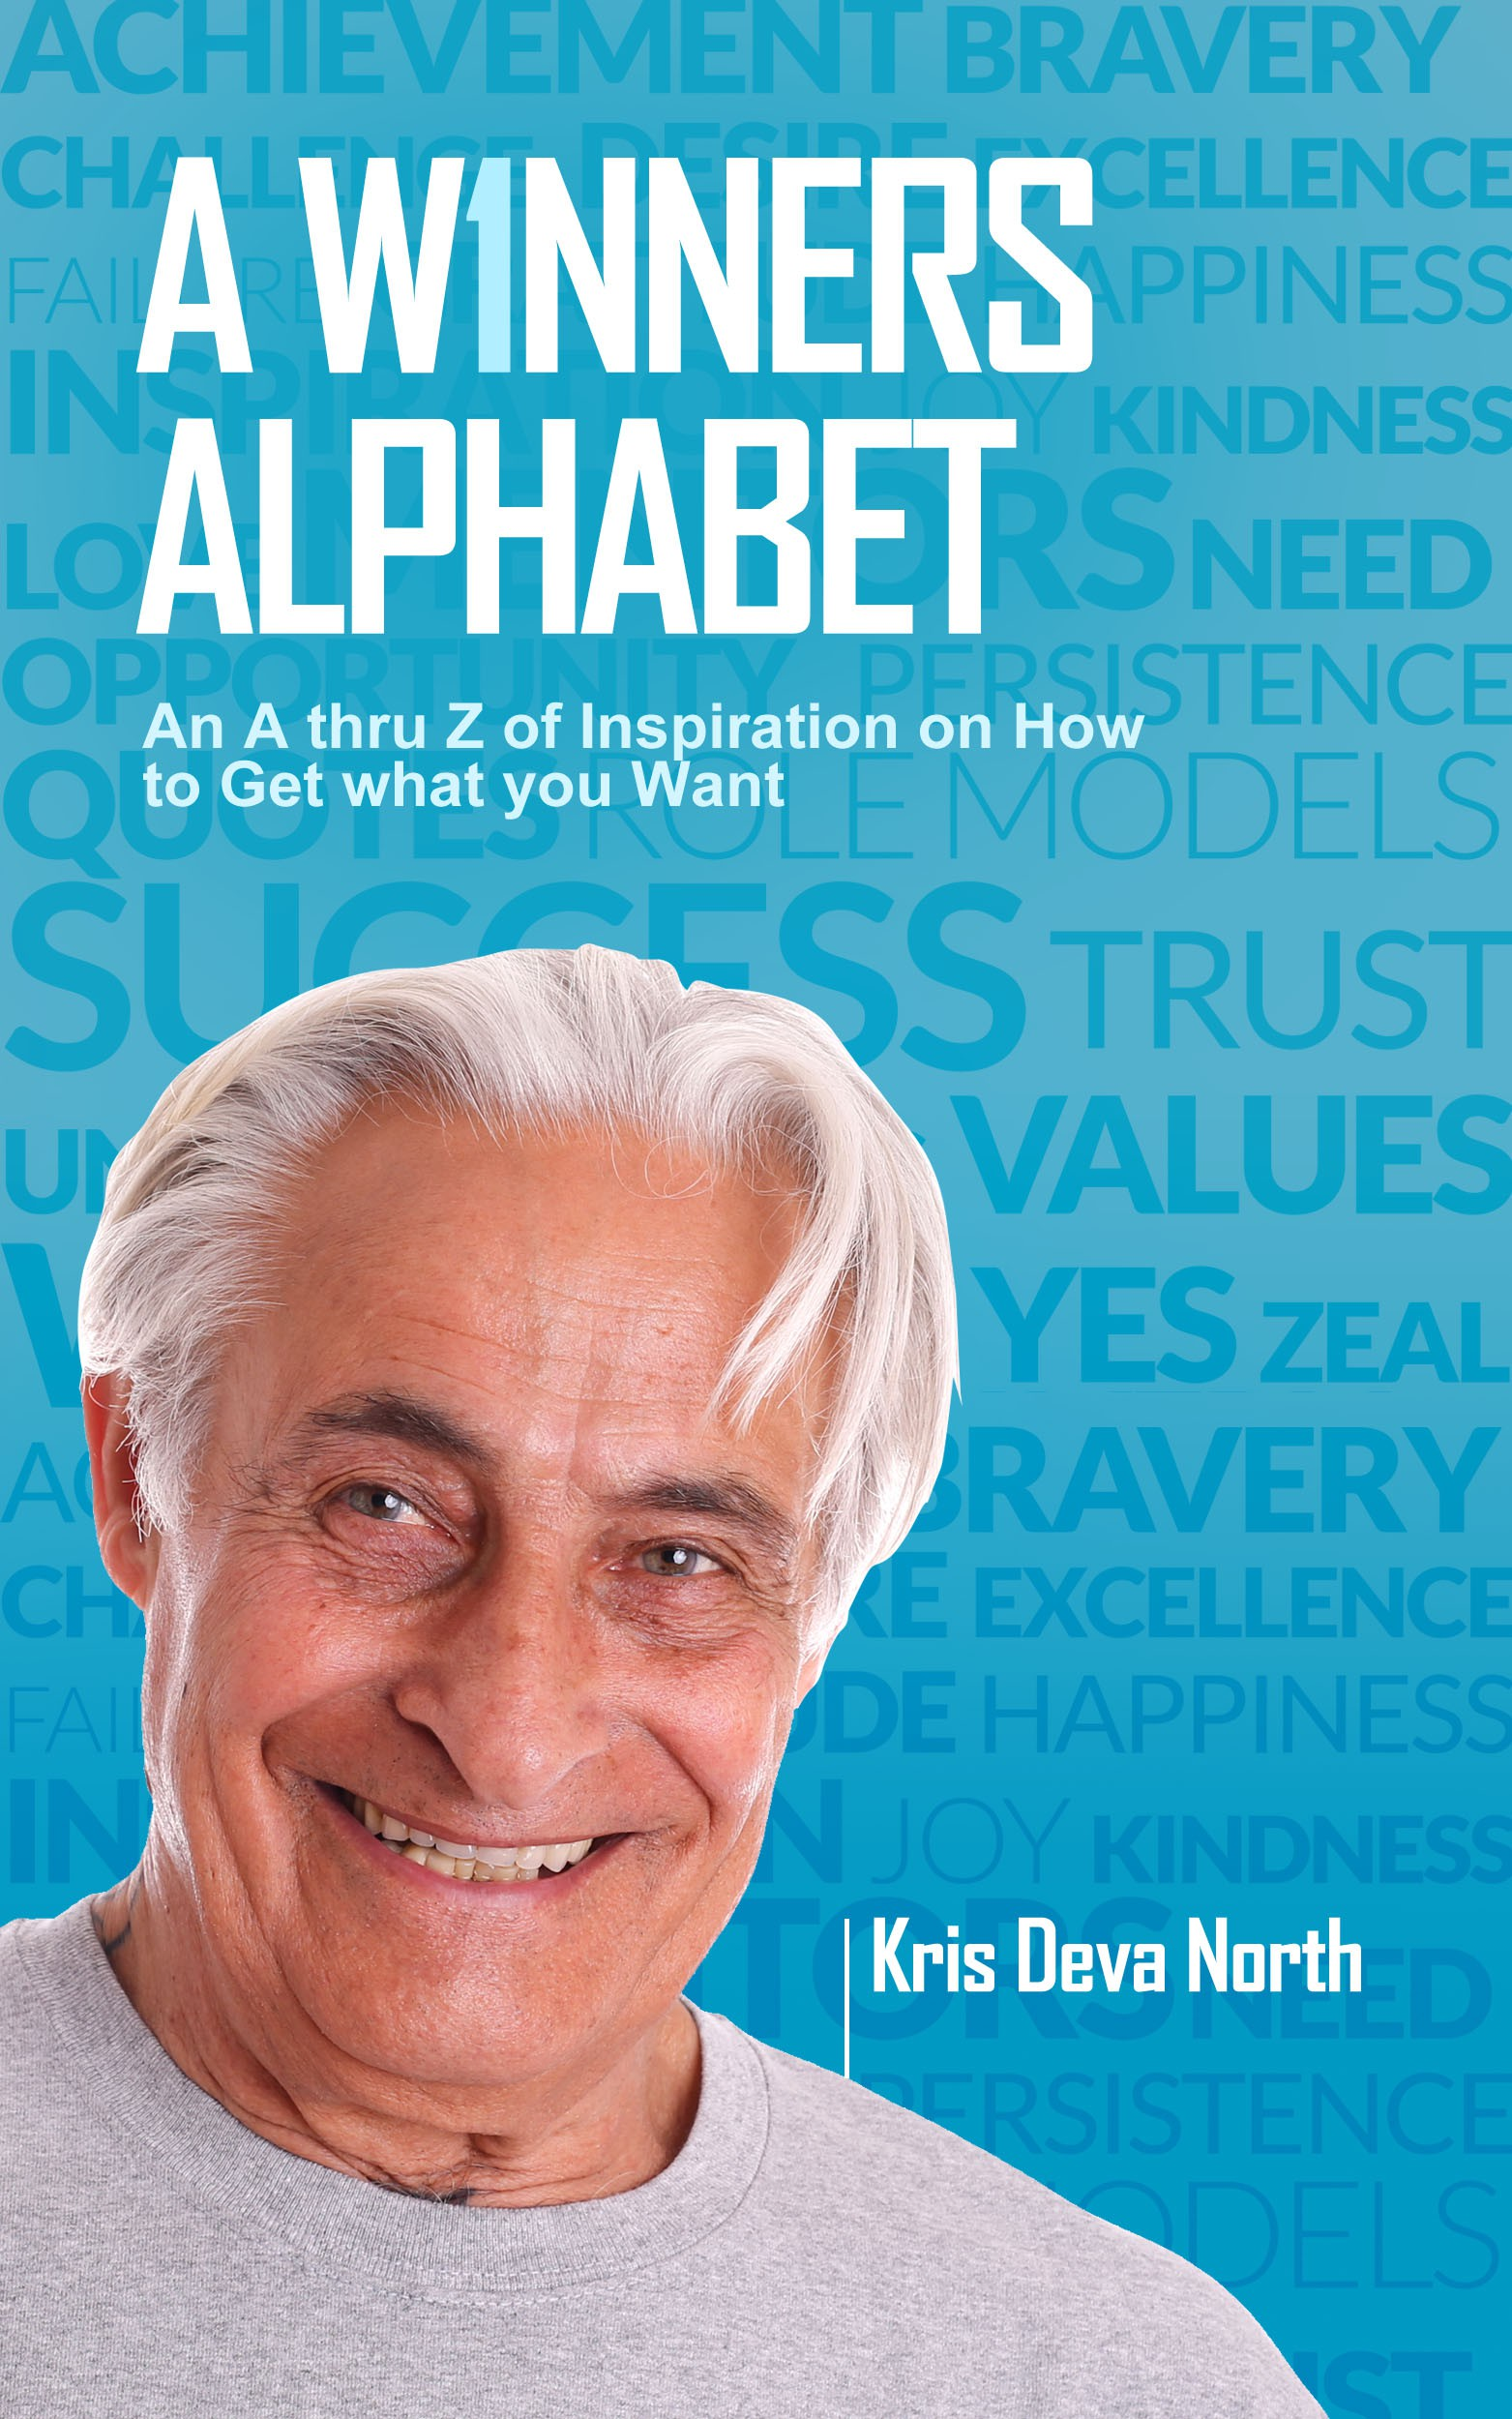 Create a compelling cover for an ebook of quotations 'A W1nners Alphabet'